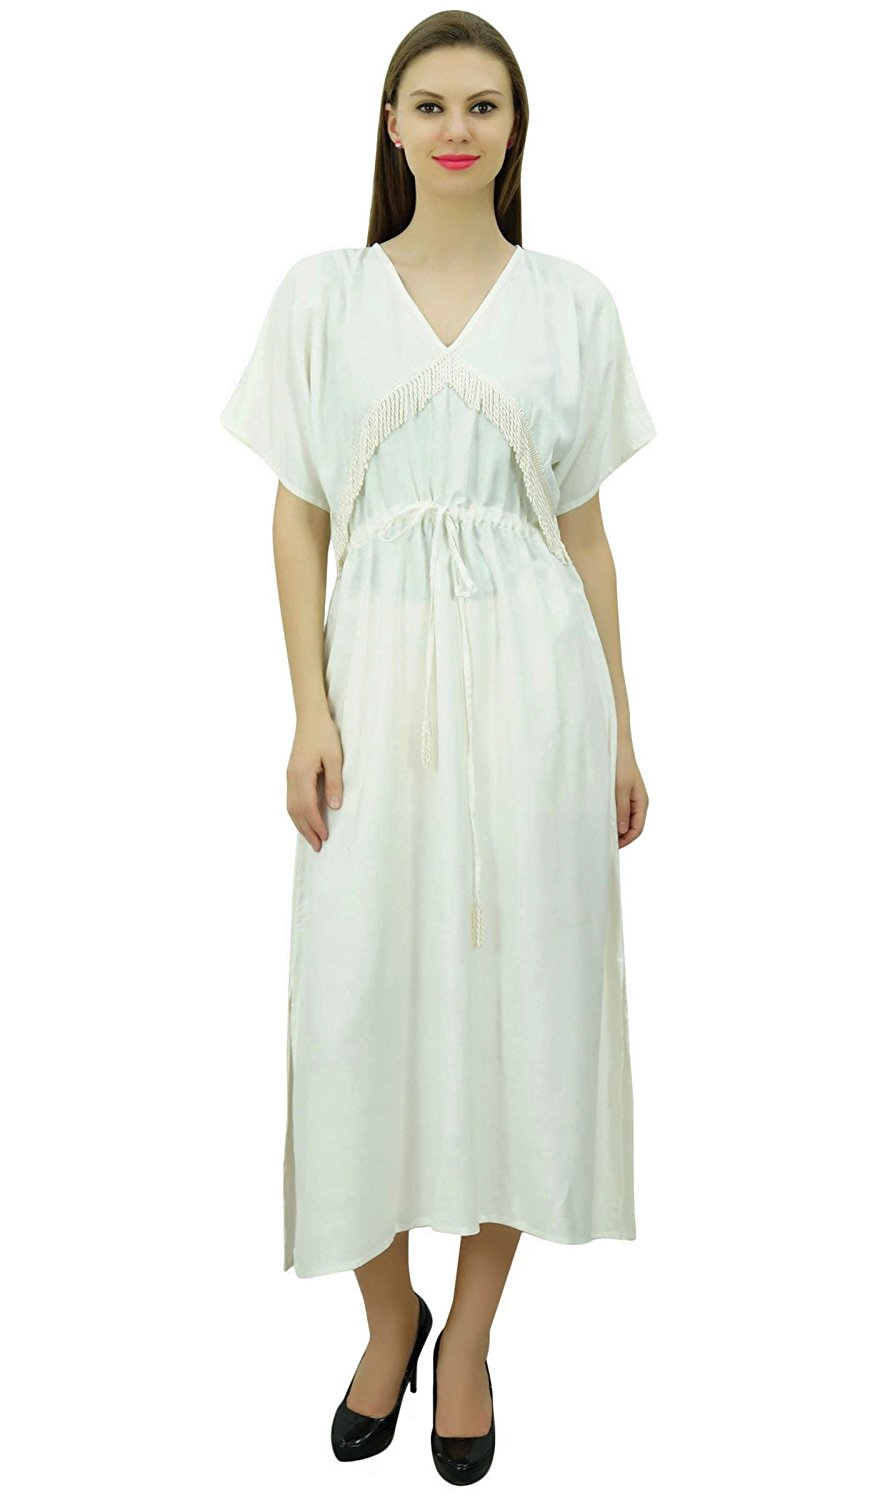 7466d3c842 Get Quotations · Bimba Rayon Solid Pattern Caftan Maxi Dress Women's Night  Gown Kimono Dress Cover up